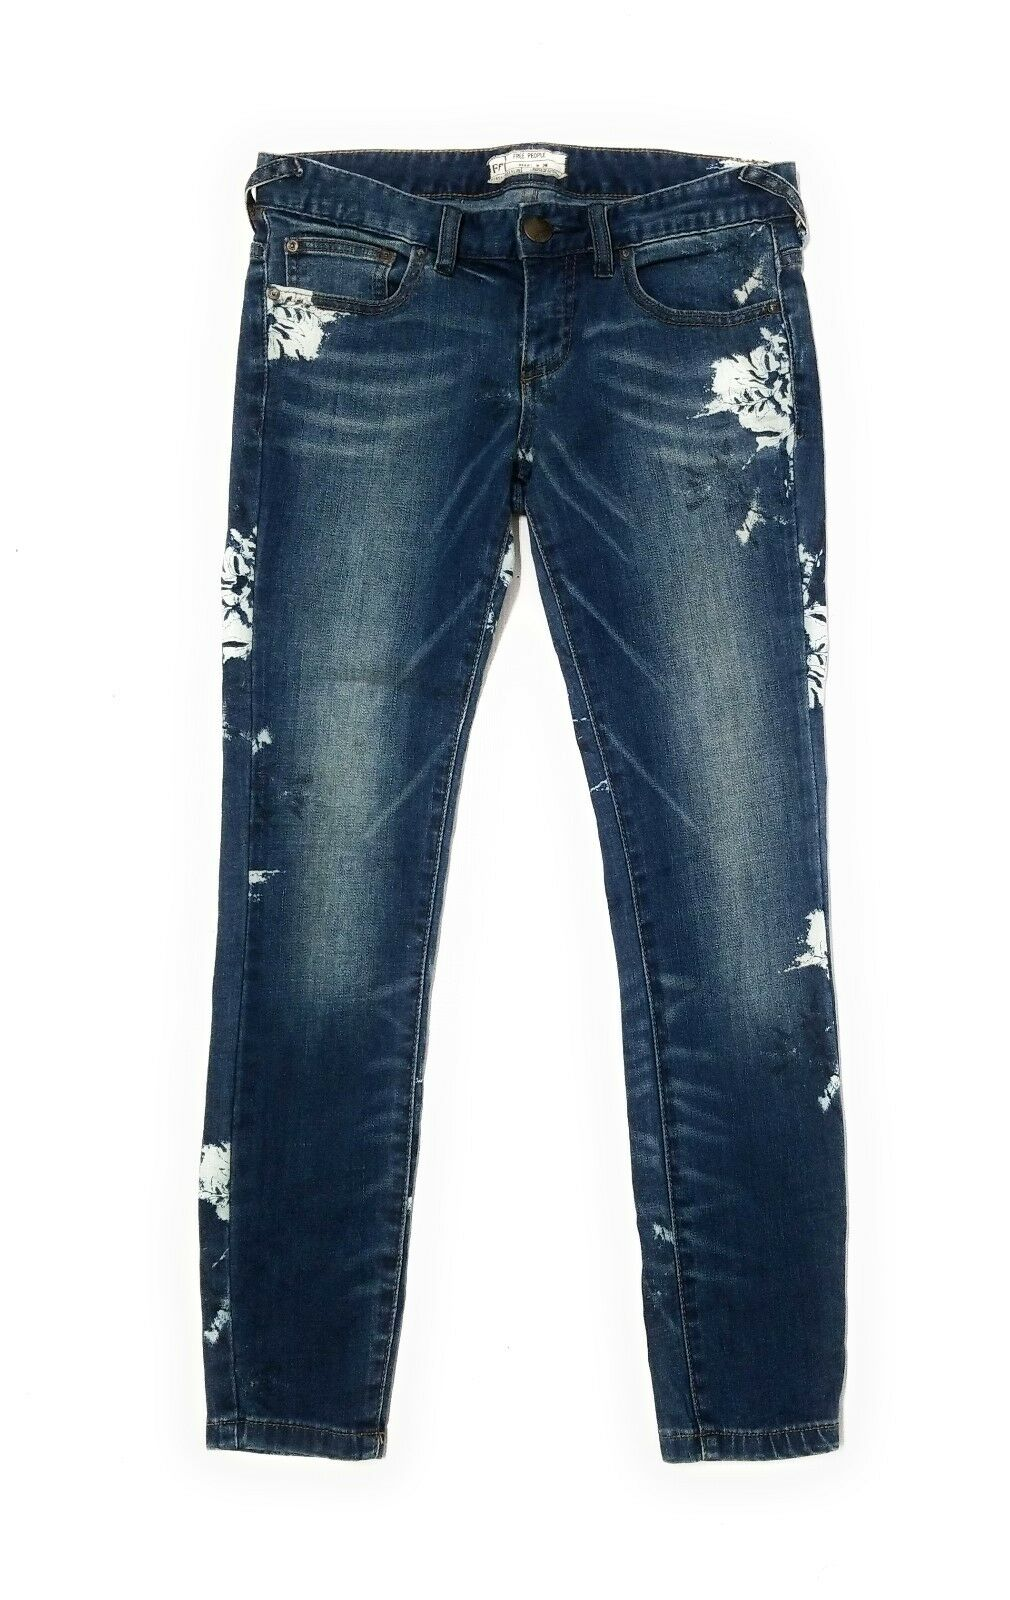 Free People Womens Floral Side Ankle Cut Skinny Jeans Size 26